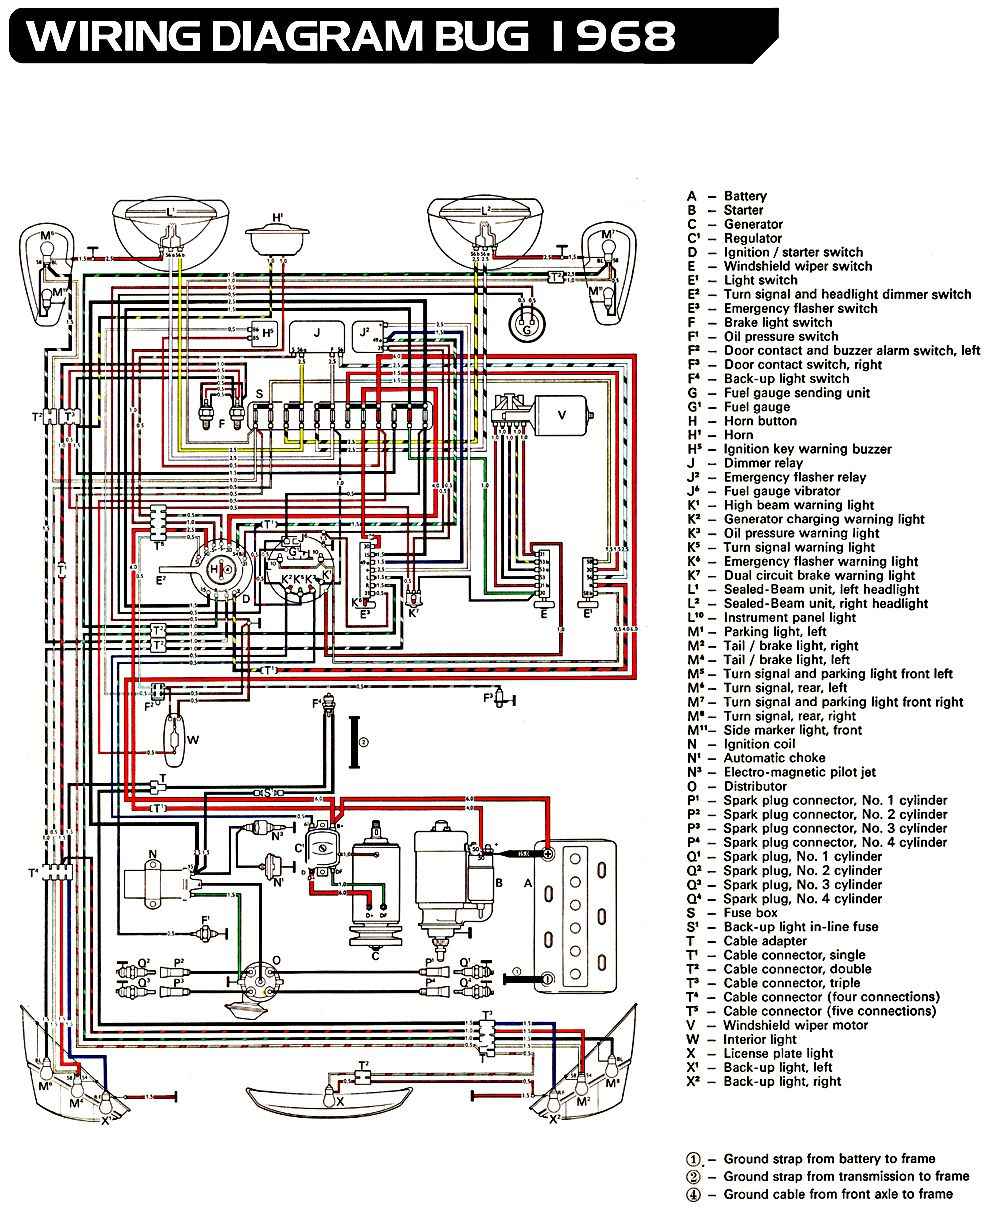 3a1908112d3826270ed5e3be362292bf vw bug ignition wiring diagram 73 vw wiring diagram free 1973 super beetle wiring harness at nearapp.co